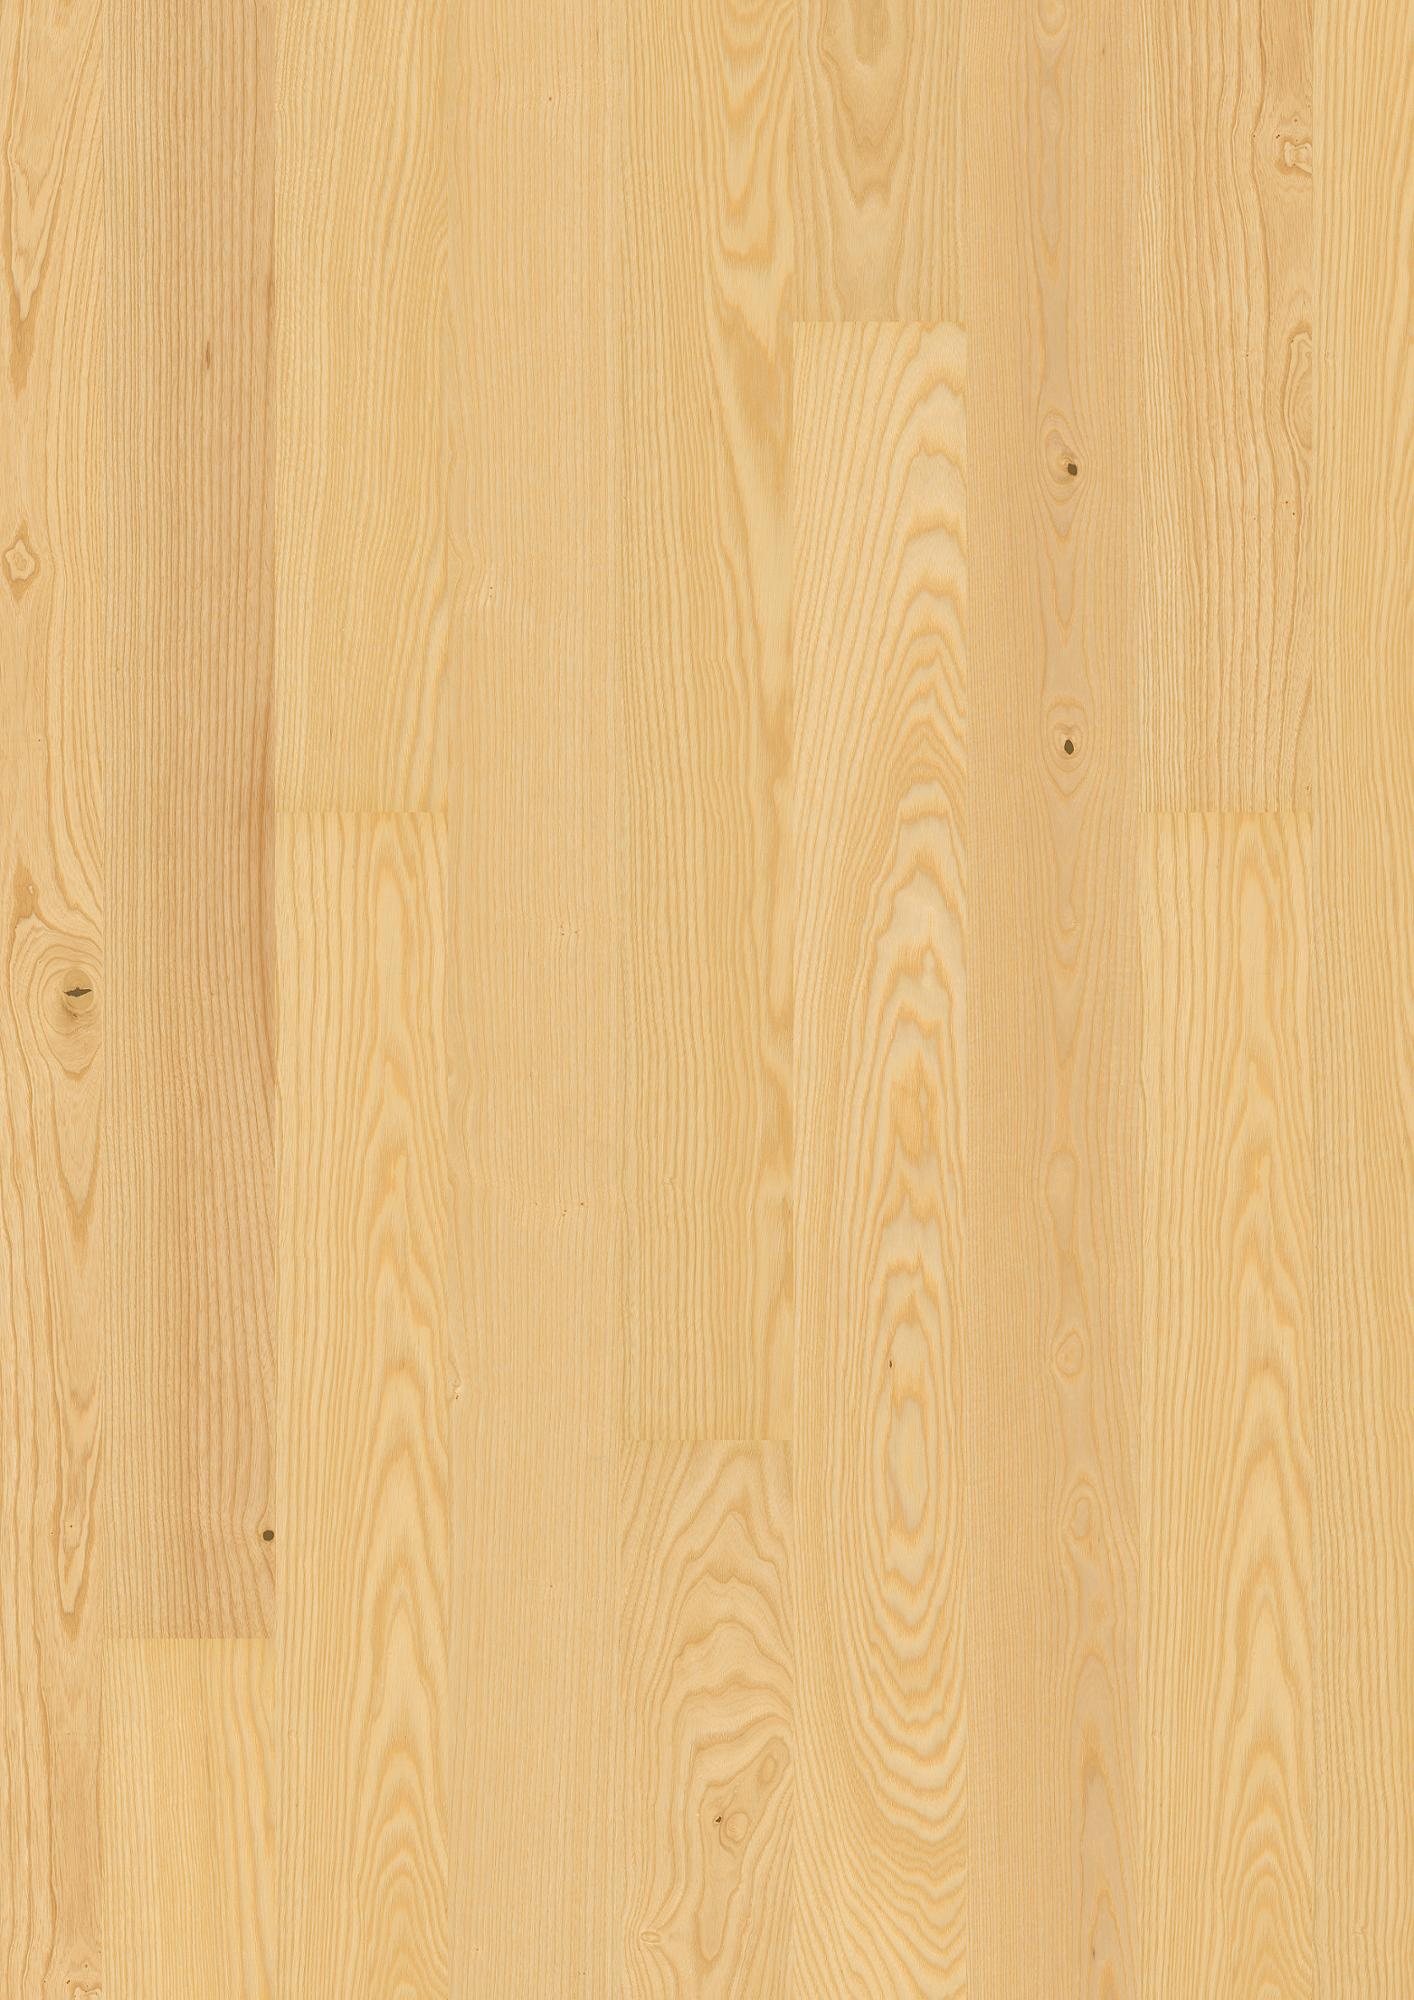 Ash Andante, Live Matt lacquer, Unbrushed, Square edged, Plank 138, 14x138x2200mm